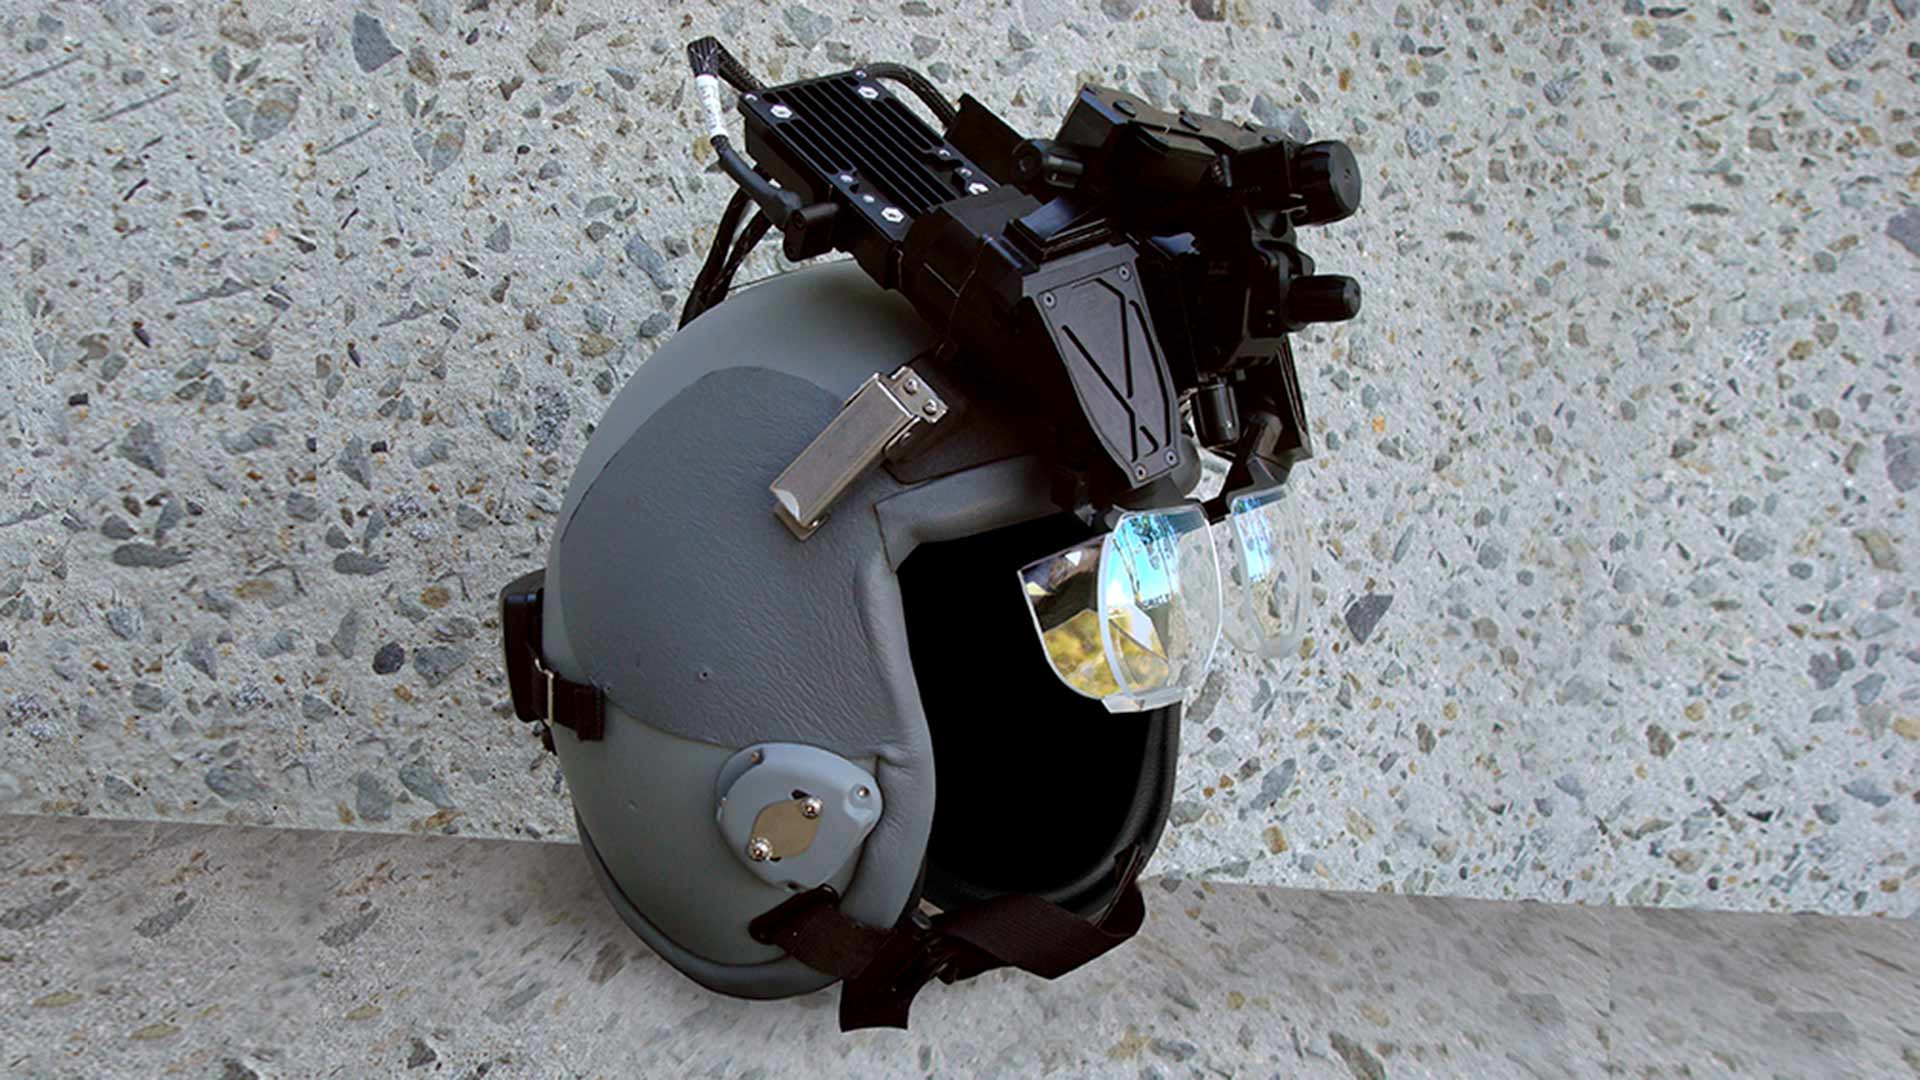 Simulation and Training Helmet Mounted Display (HMD)